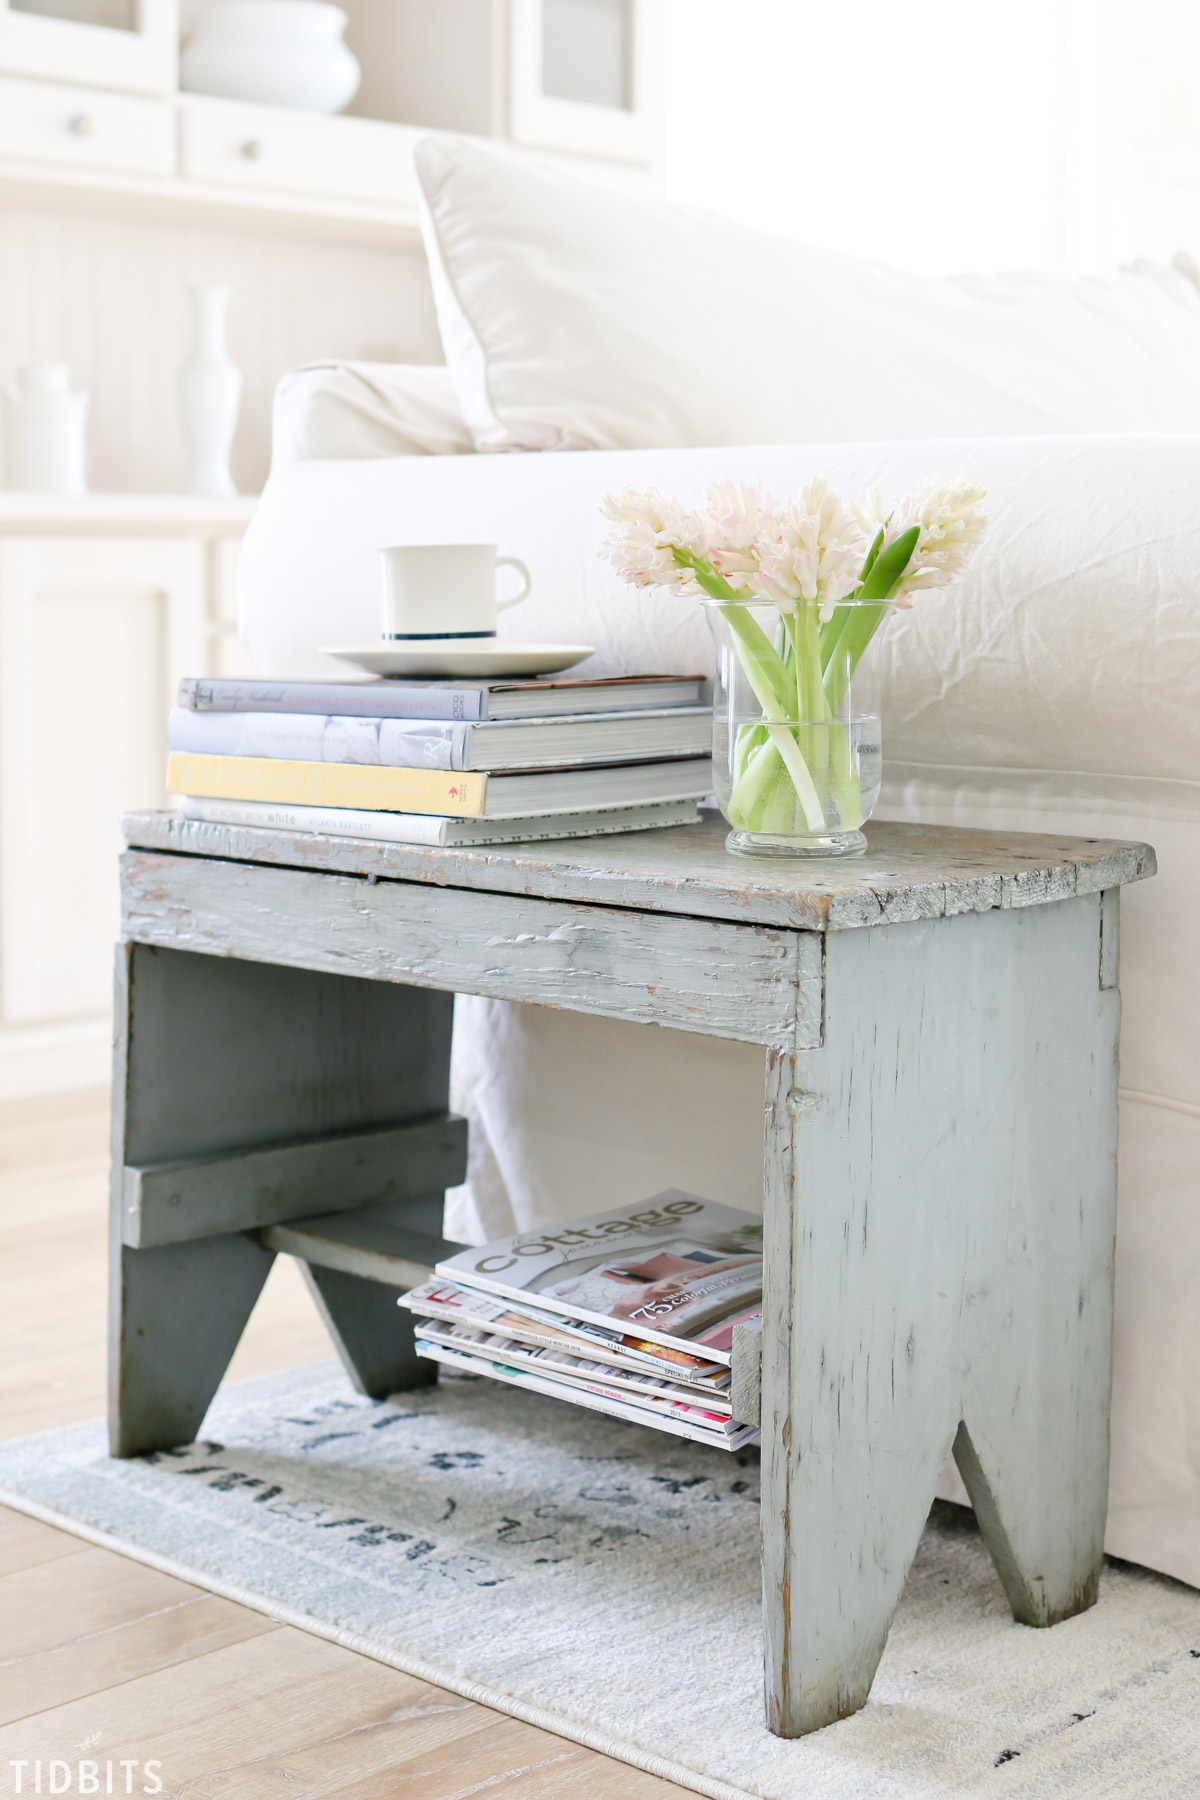 Bench used as a side table for magazines